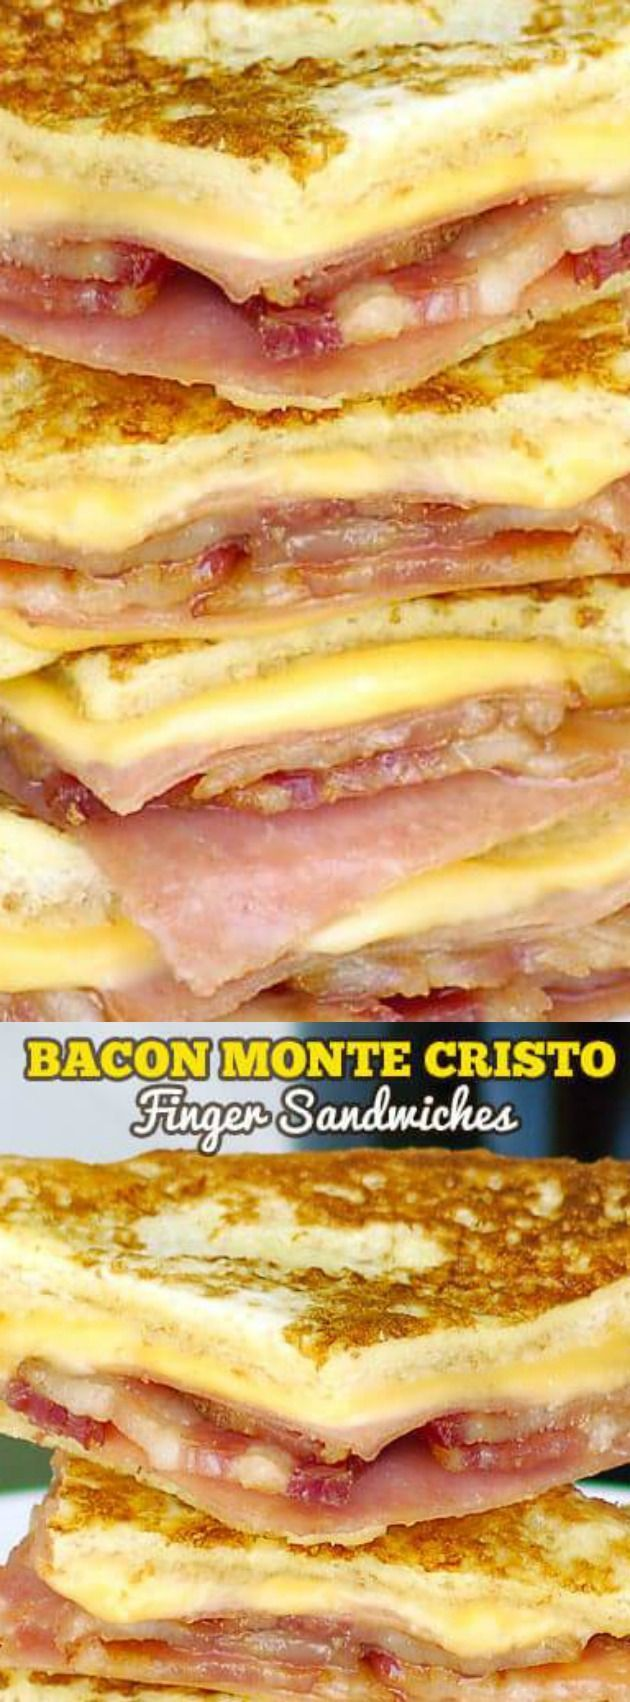 These easy Bacon Monte Cristo Finger Sandwiches from The Slow Roasted Italian are fully loaded with meat and ooey gooey cheese!